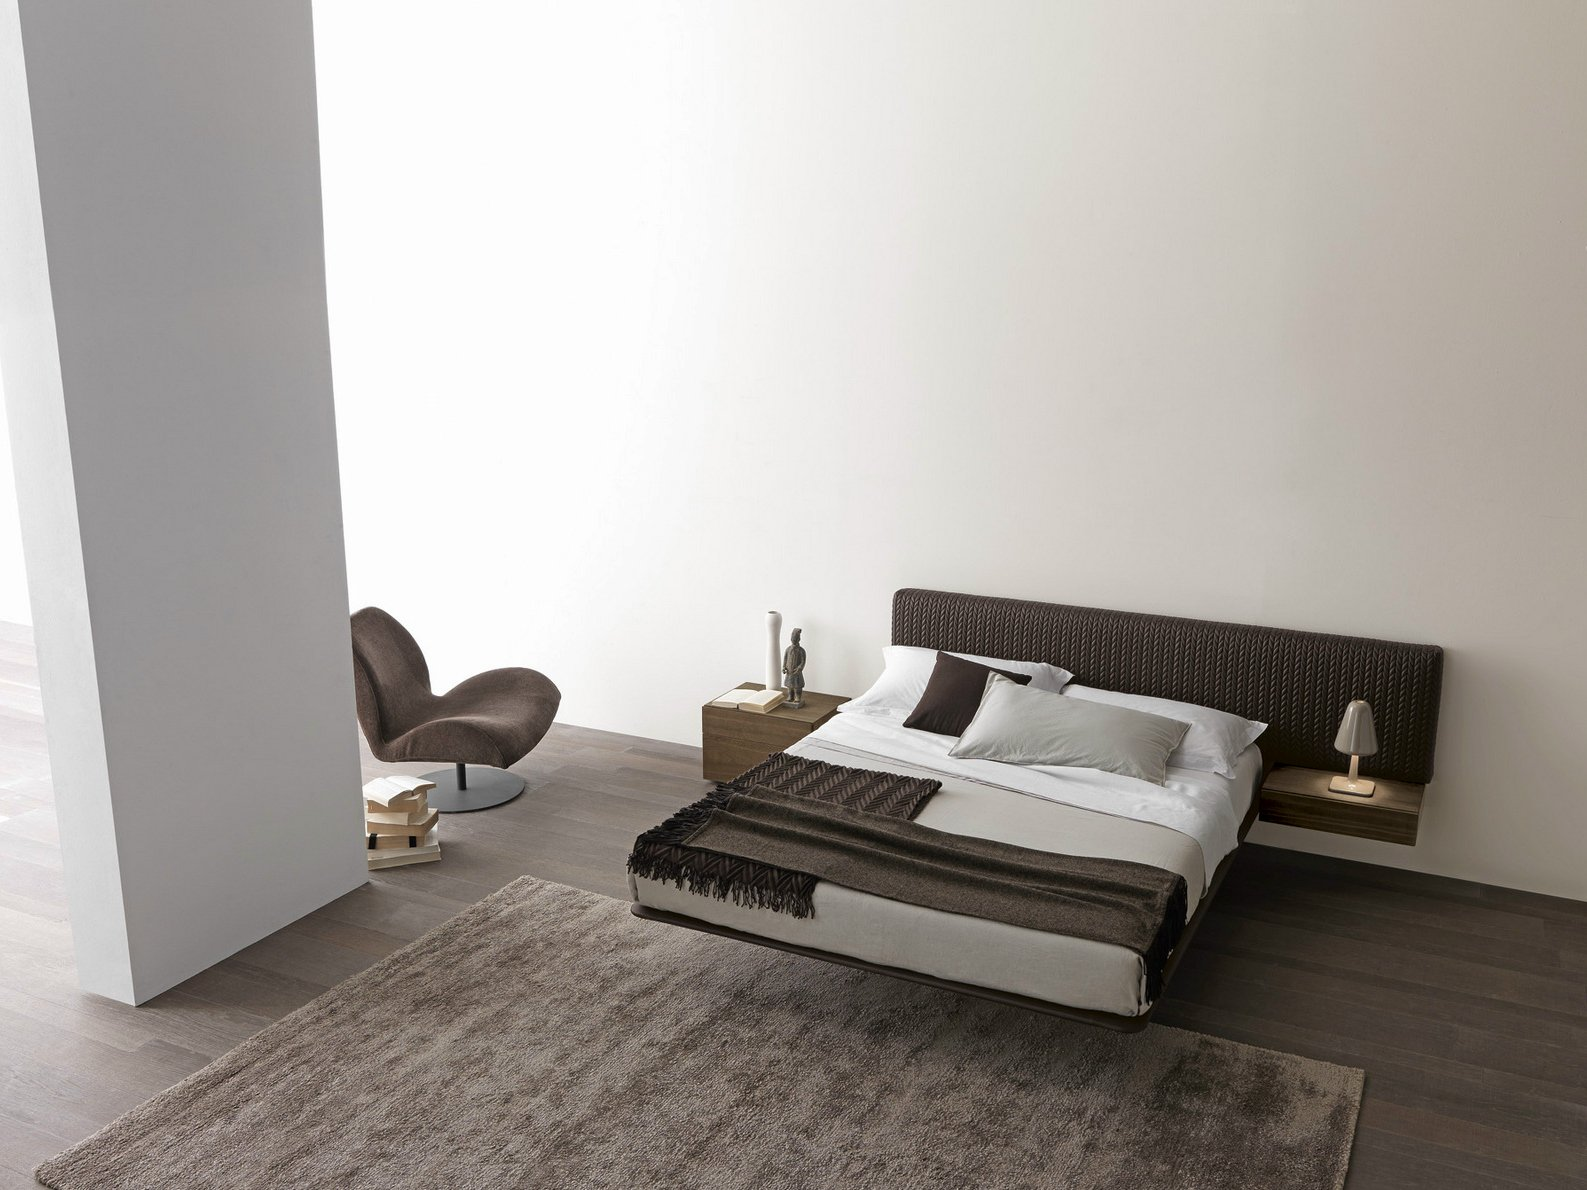 Wing system letto matrimoniale by presotto industrie for Letto presotto